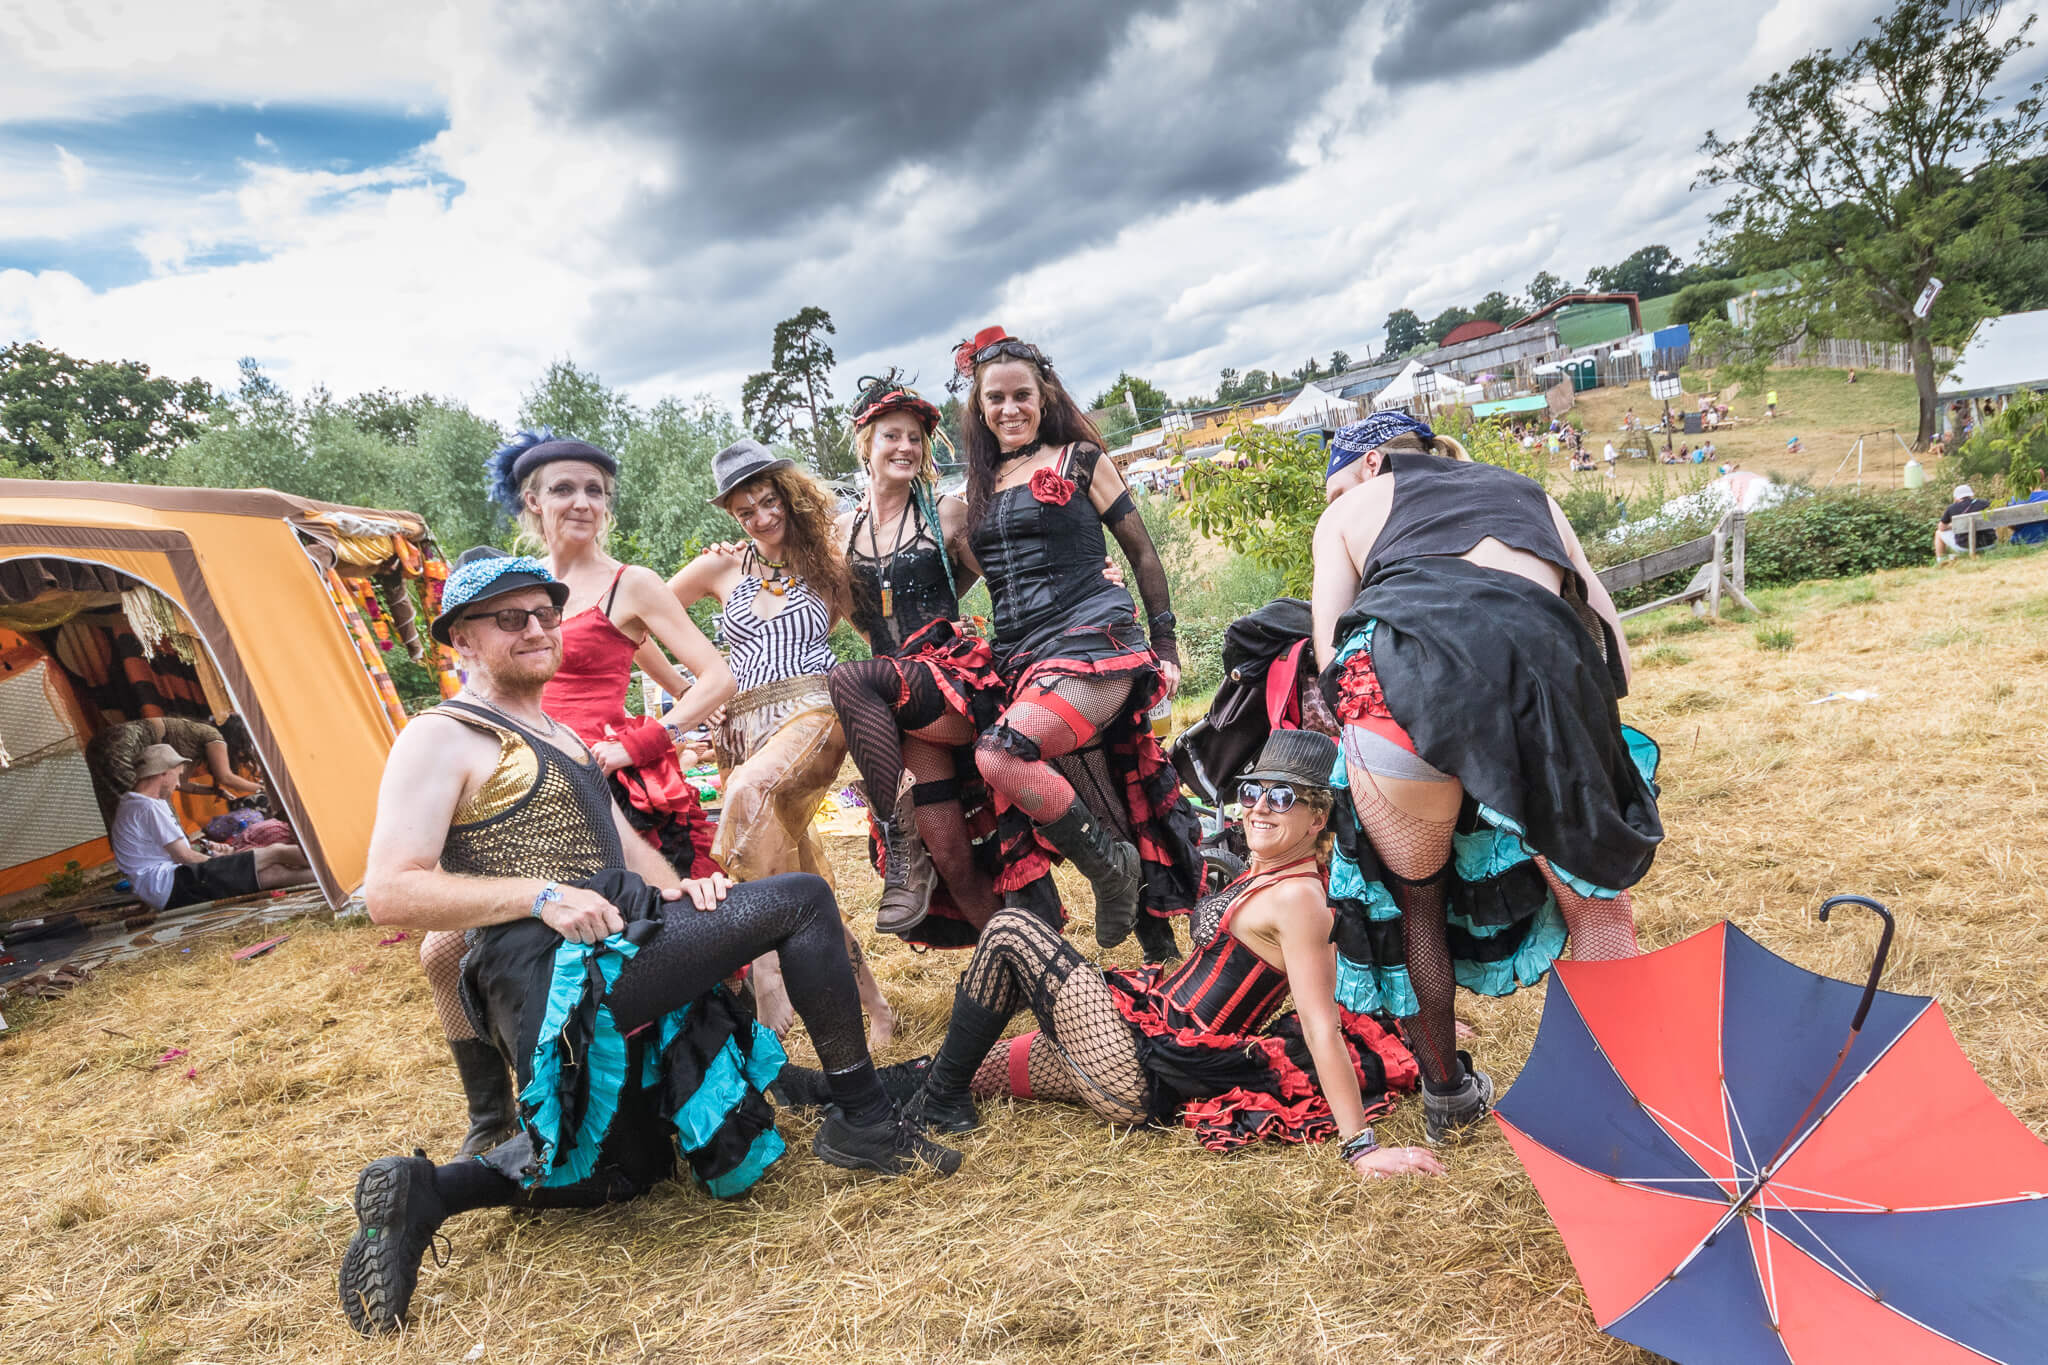 An informal group shot of a group of festival goer's (all in fancy dress) in the camping area of Nozstock. Some are stood, in a Can Can Dancer pose, one kneels, one sits, and one gentleman bends over to display his under garments , and the tops his fishnet stockings.